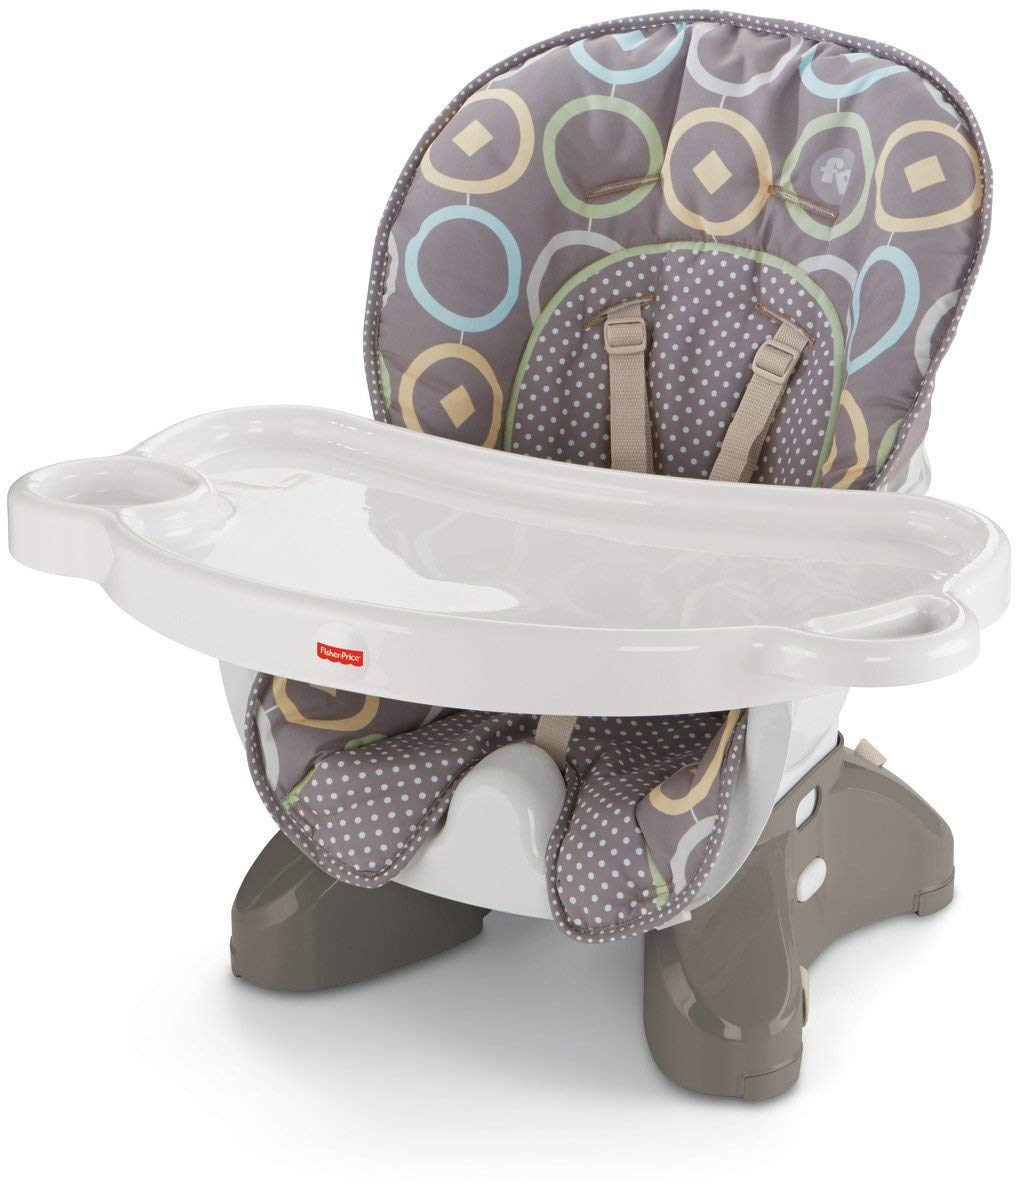 Top 10 Best Baby Booster Seat For Eating (2020 Reviews & Buying Guide) 7